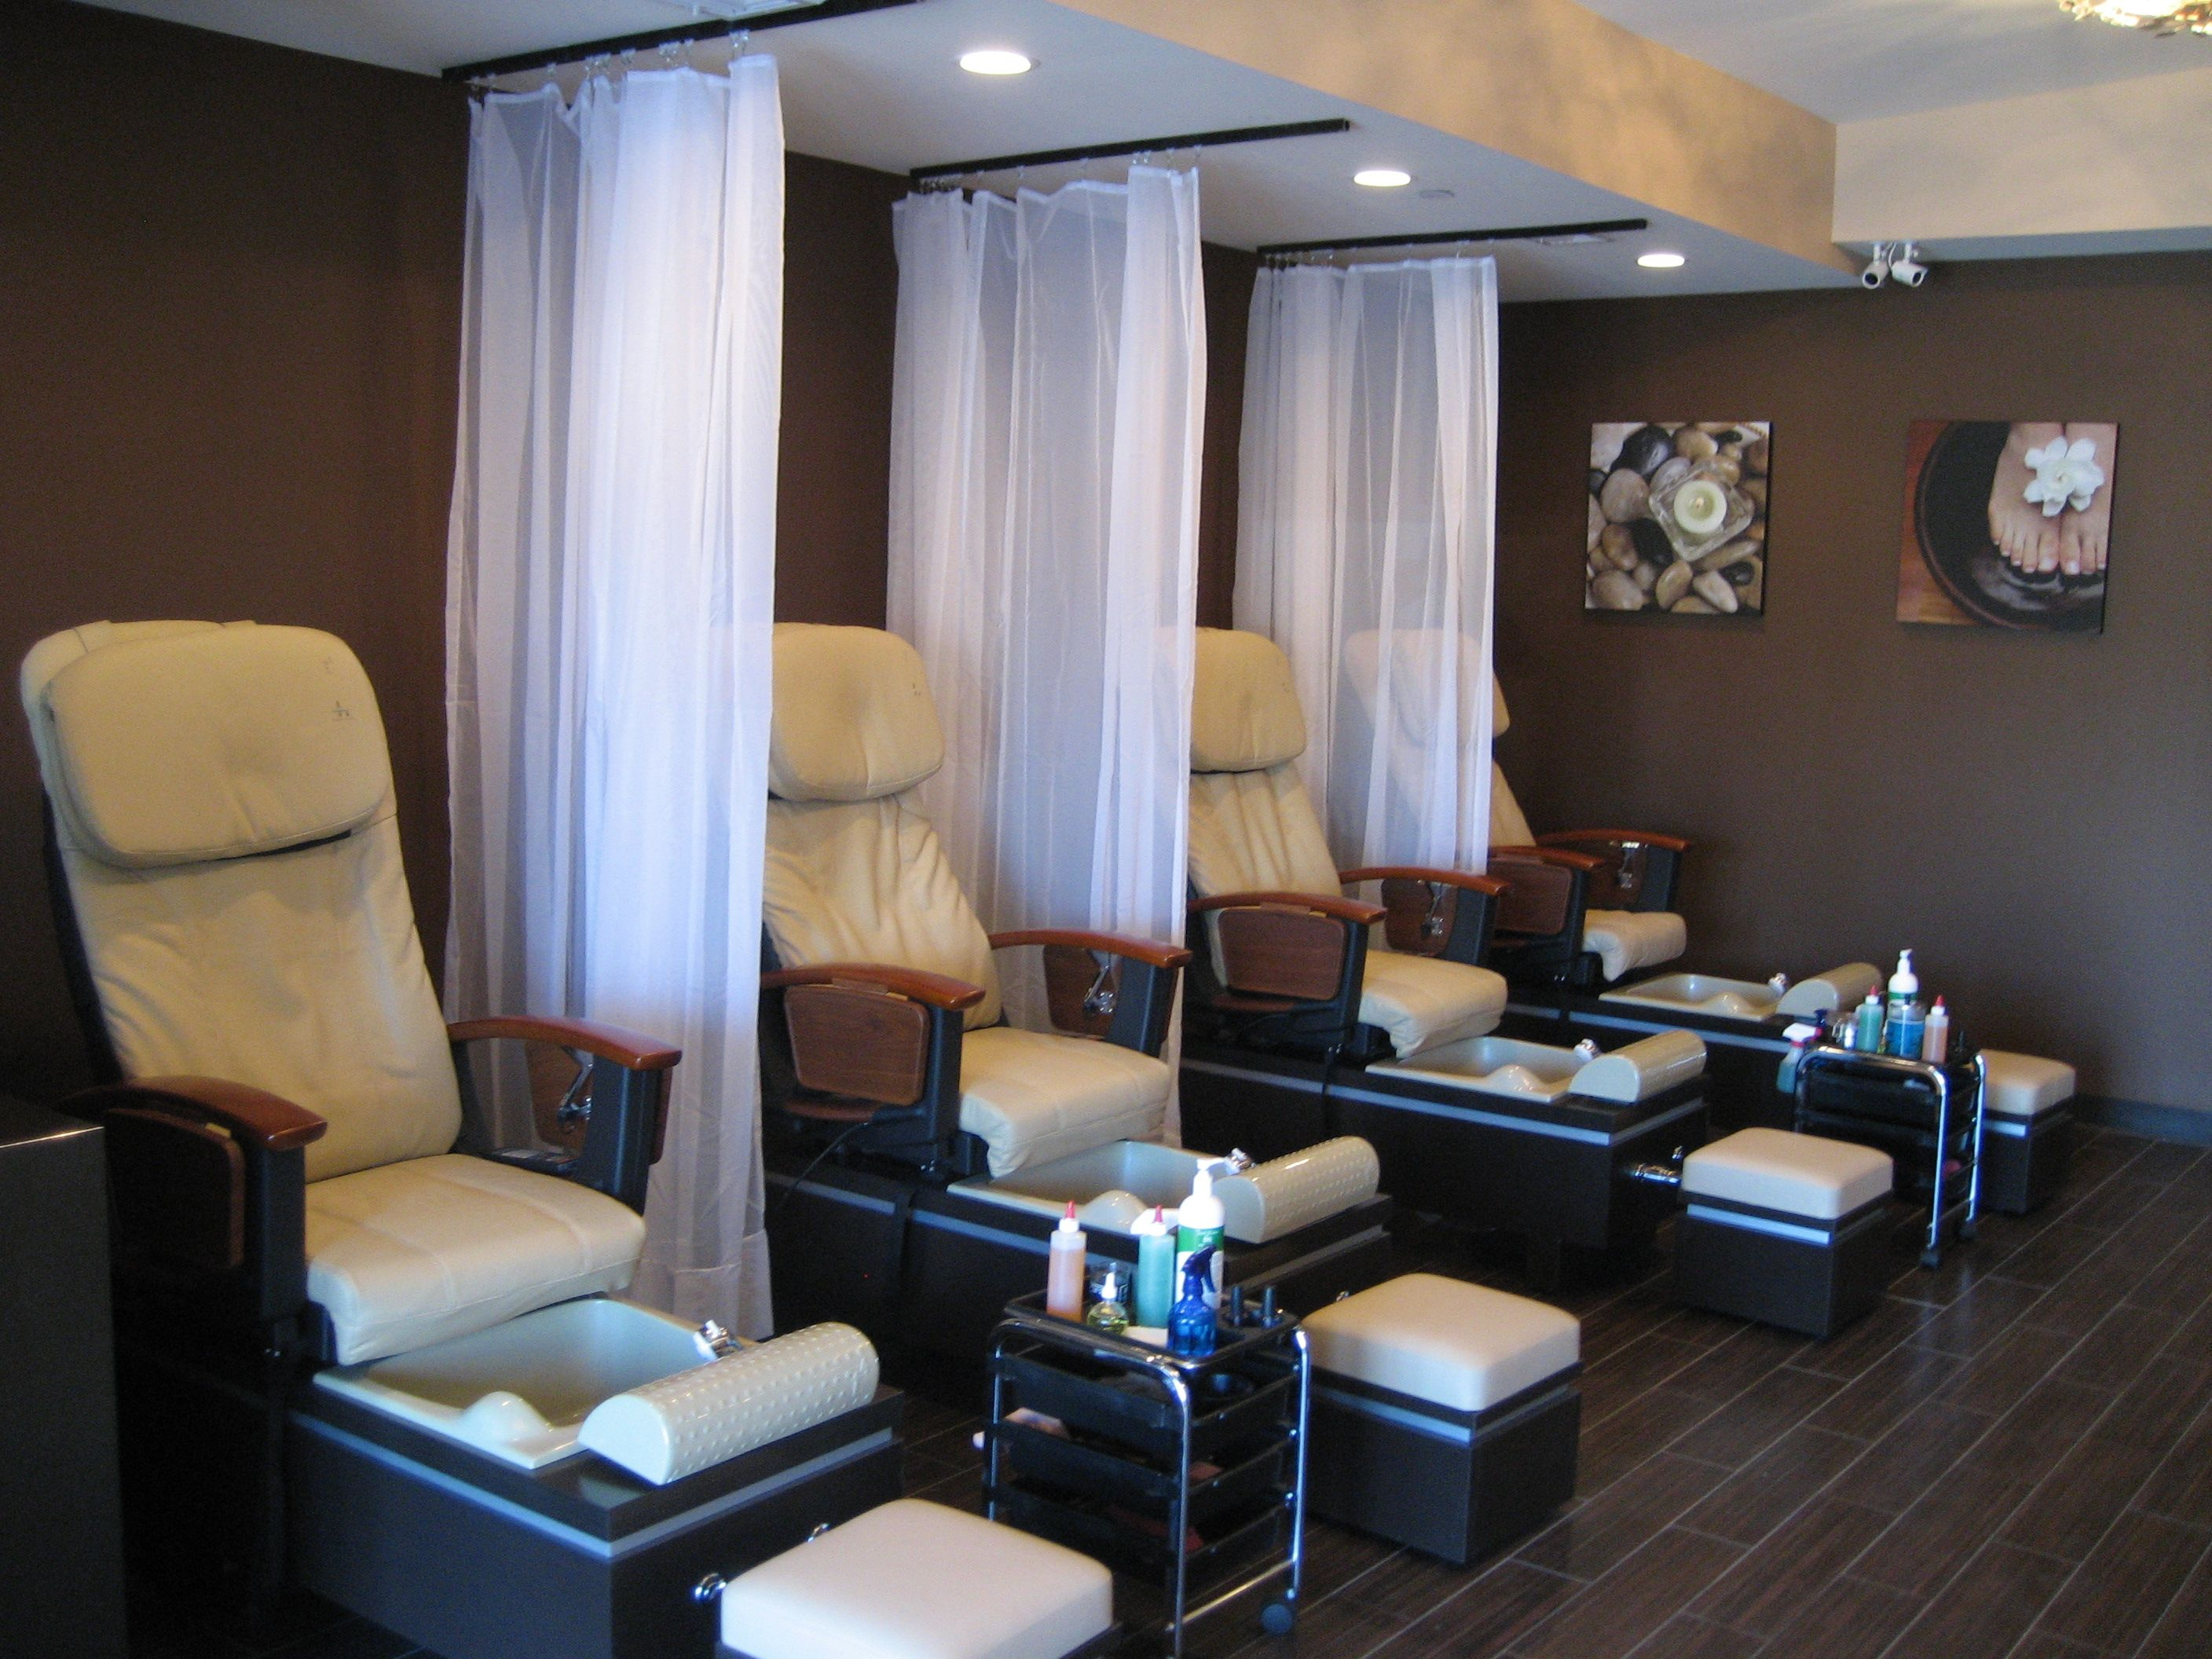 Deco Salon Zen Moderne Image Result For Small Nail Salon Interior Designs Salon Ideas